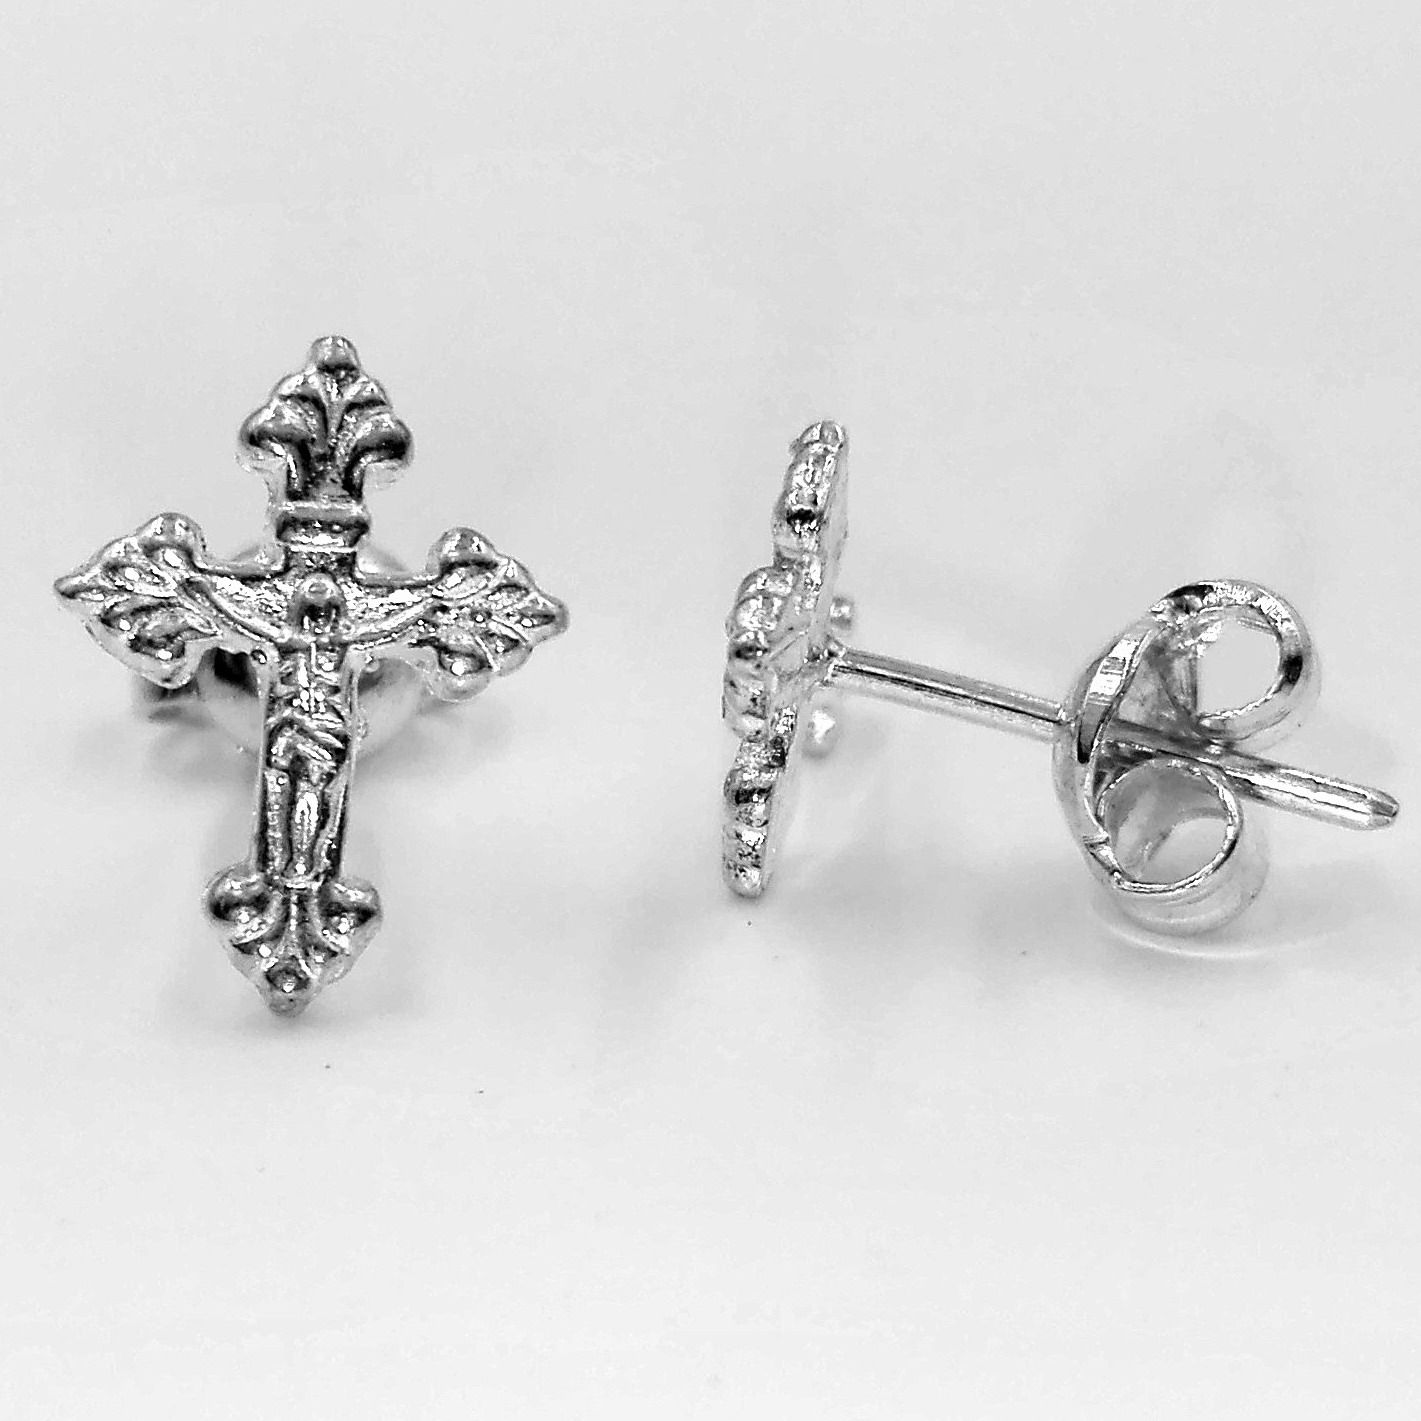 Sterling Silver Cross Earrings Studs Stud Earring